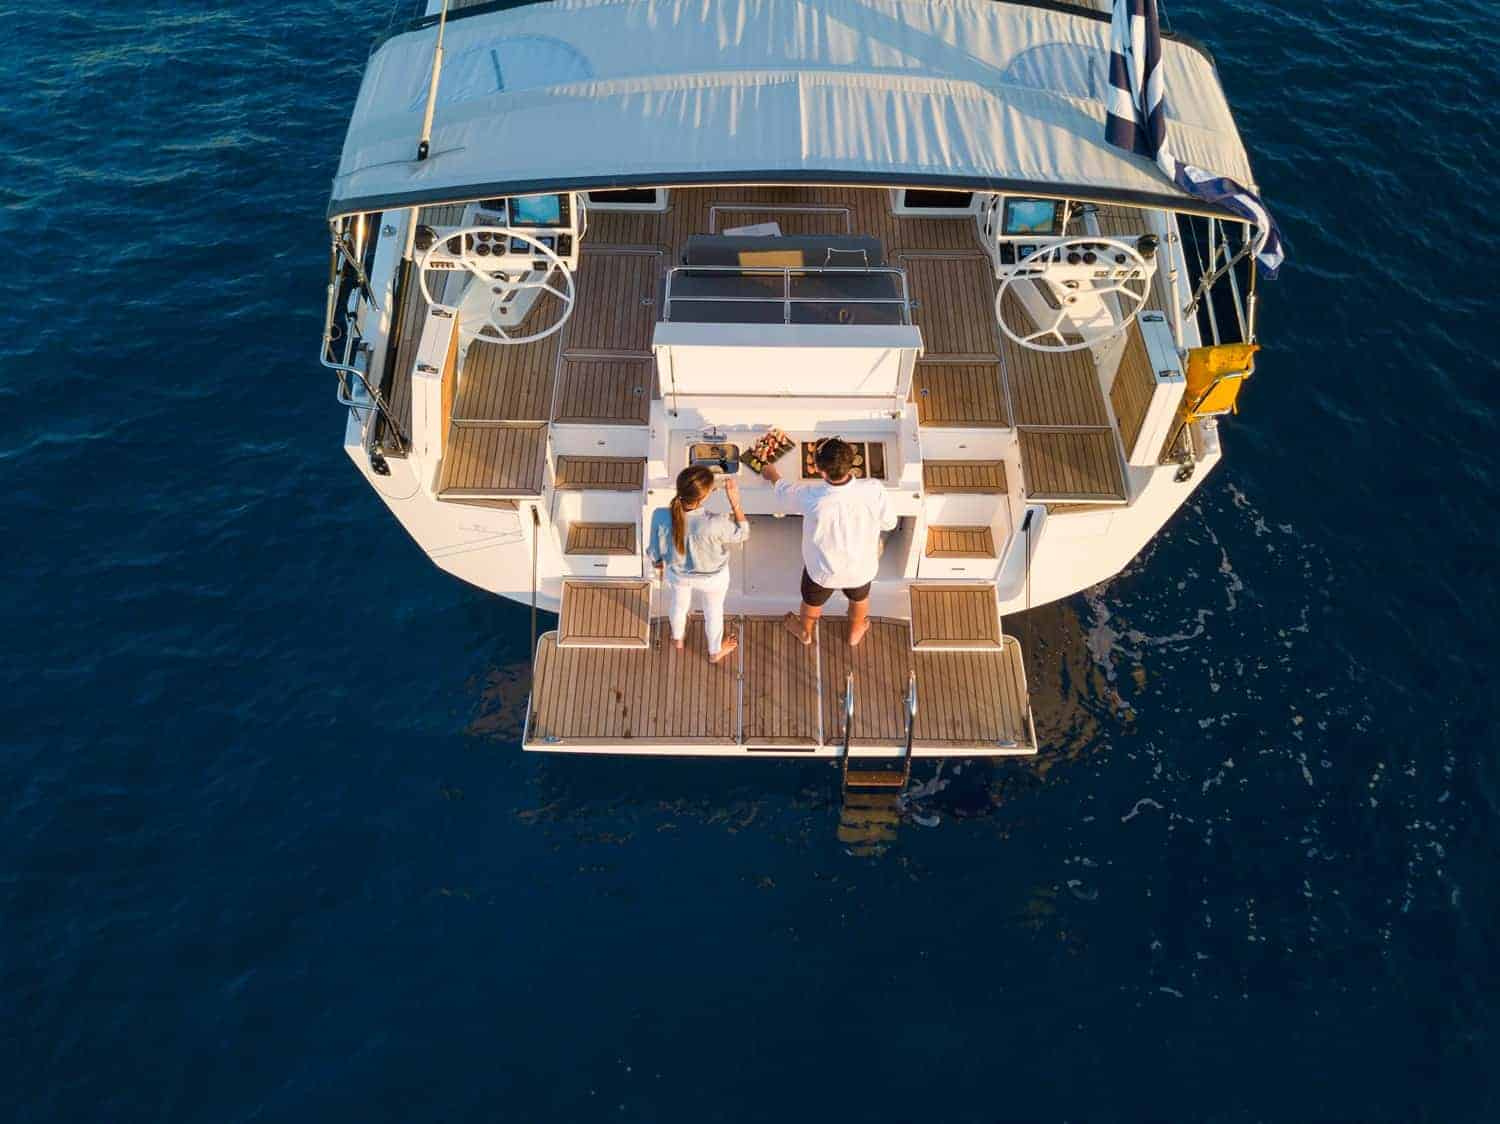 Couple enjoying a appetizer togheter on the luxurious and minimalistic rear of the Dufour Exclusive 63